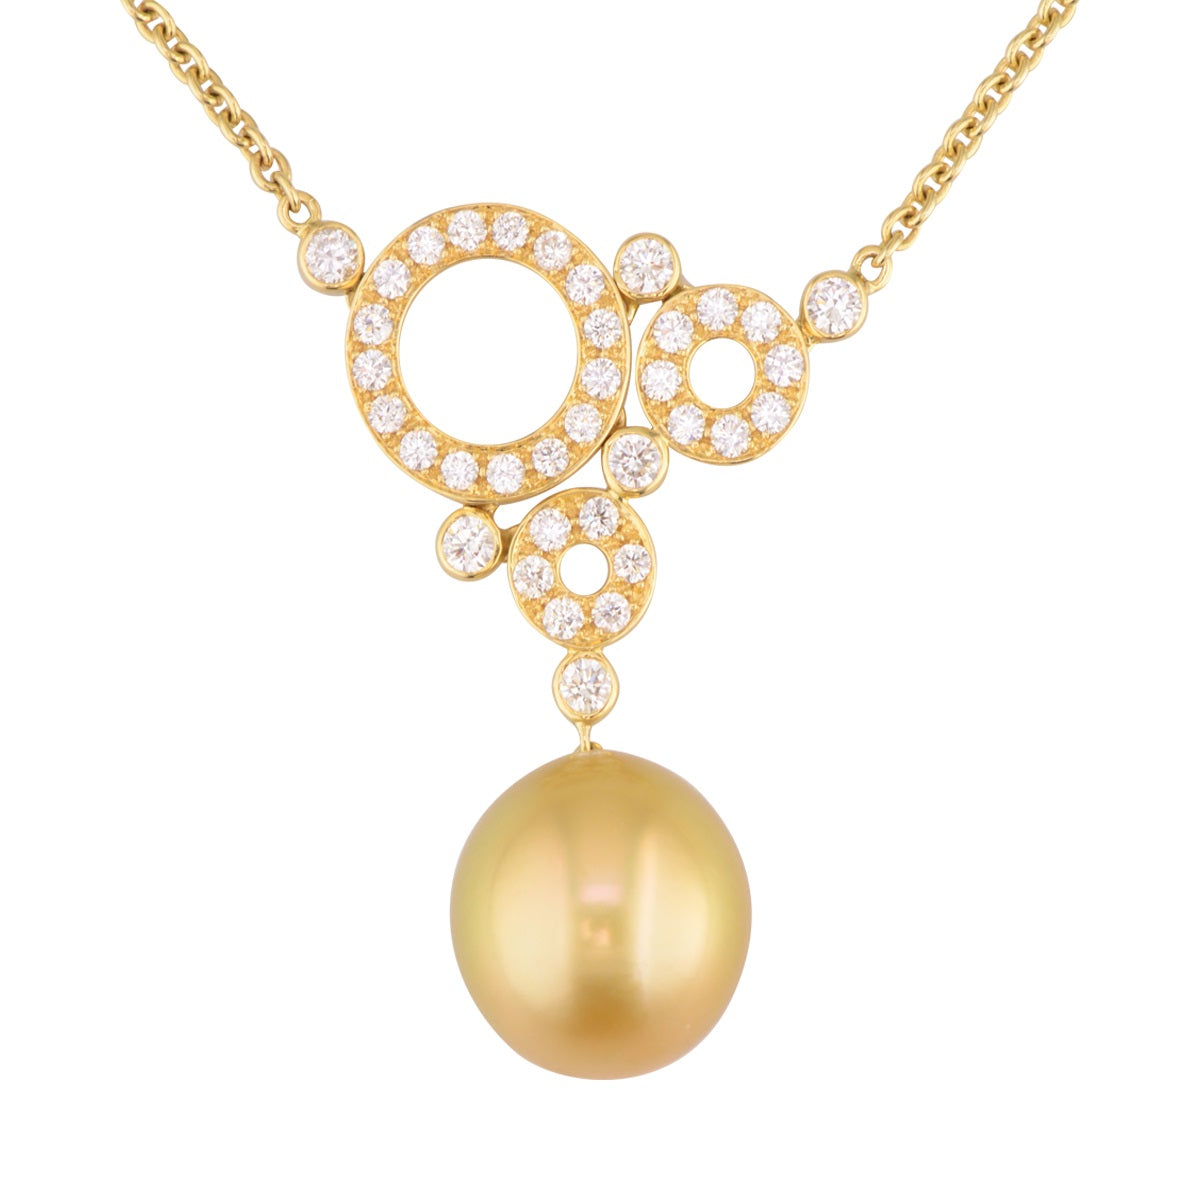 'Golden Swiss' diamond and golden pearl statement necklace.